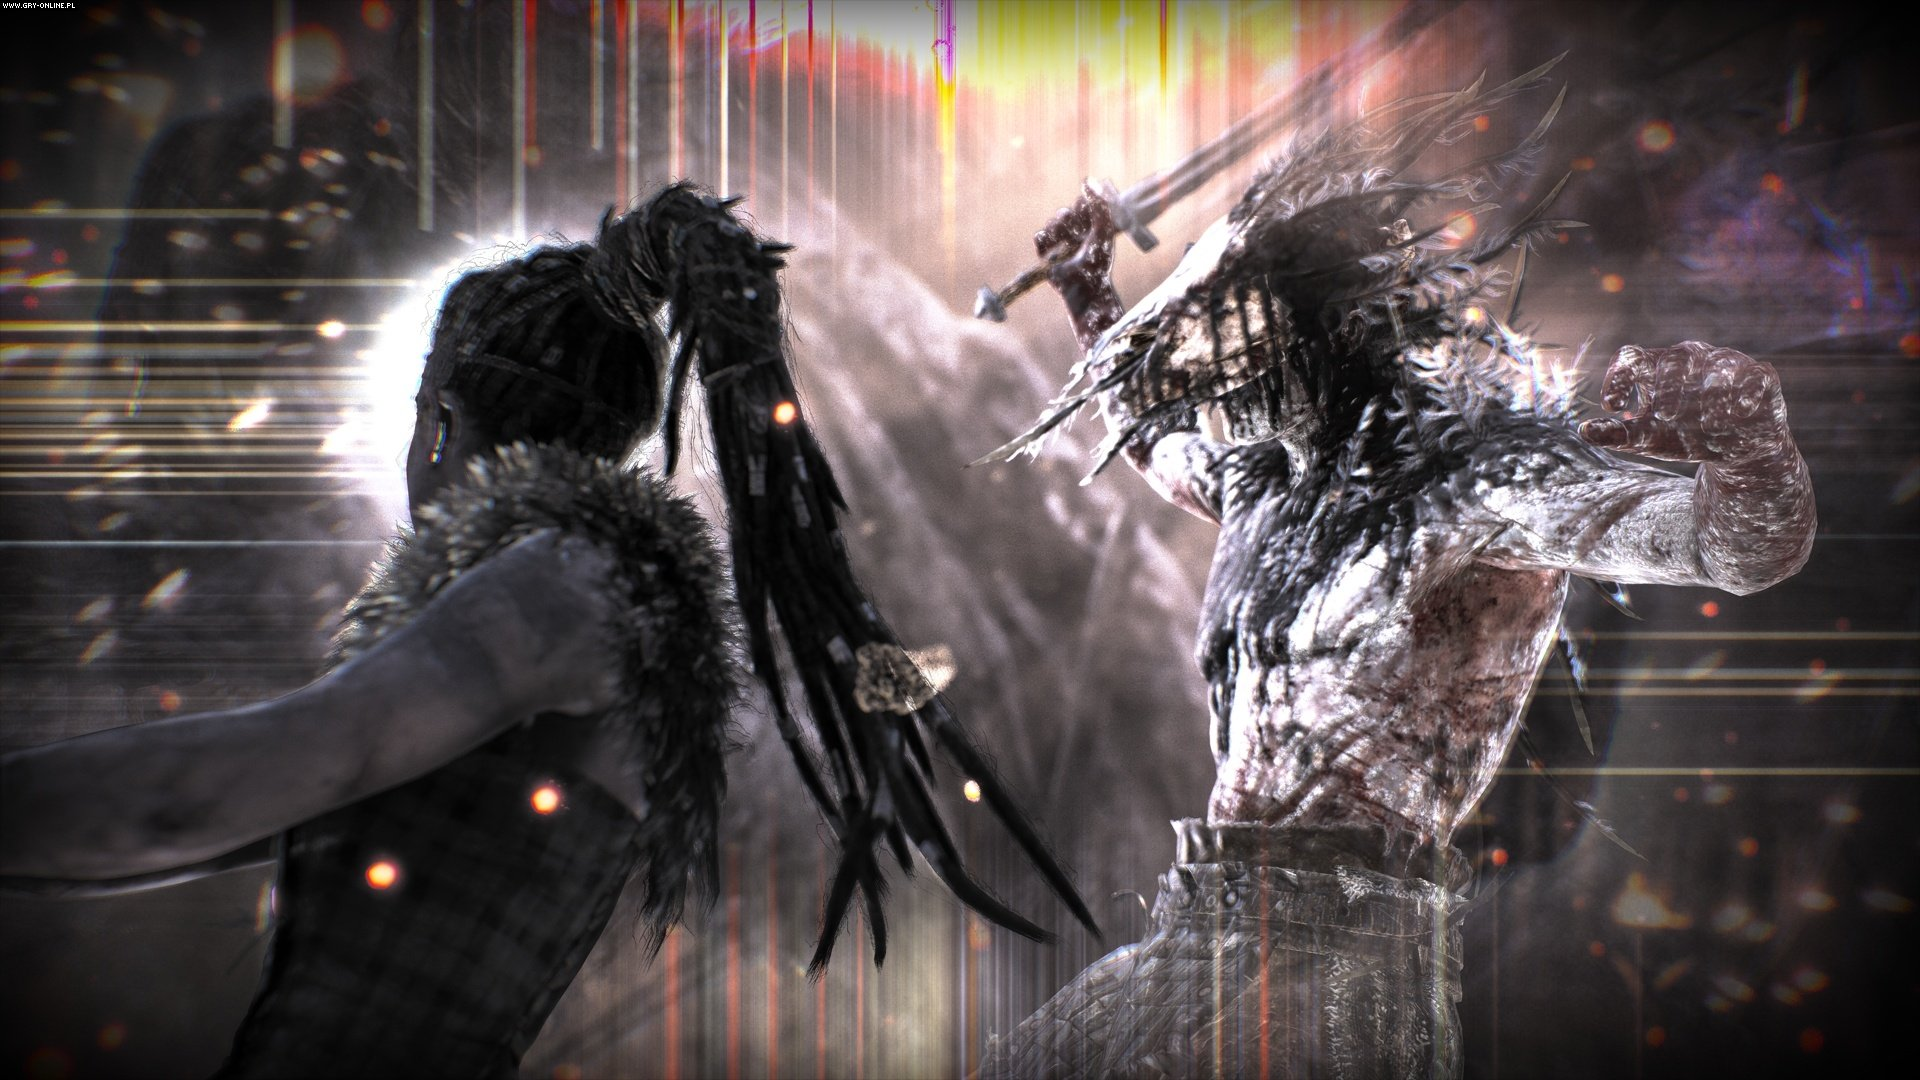 Hellblade: Senua's Sacrifice PC, PS4, XONE Gry Screen 7/17, Ninja Theory